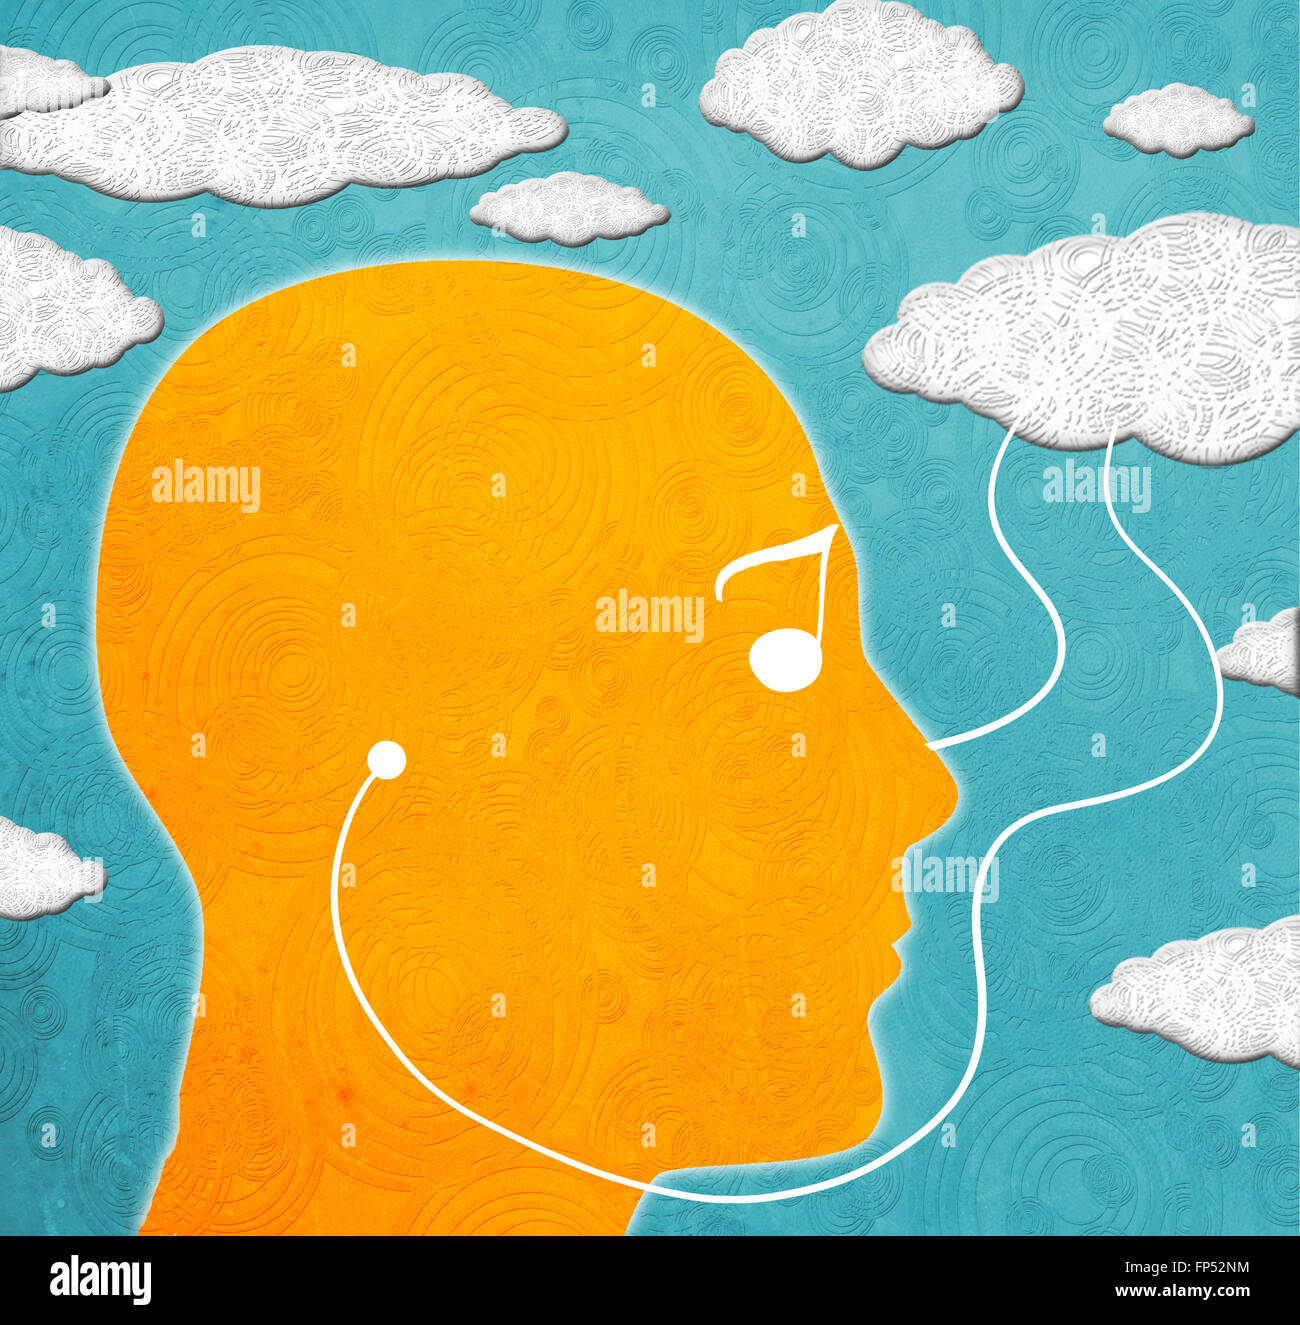 Illustration numérique de musique de cloud computing Photo Stock